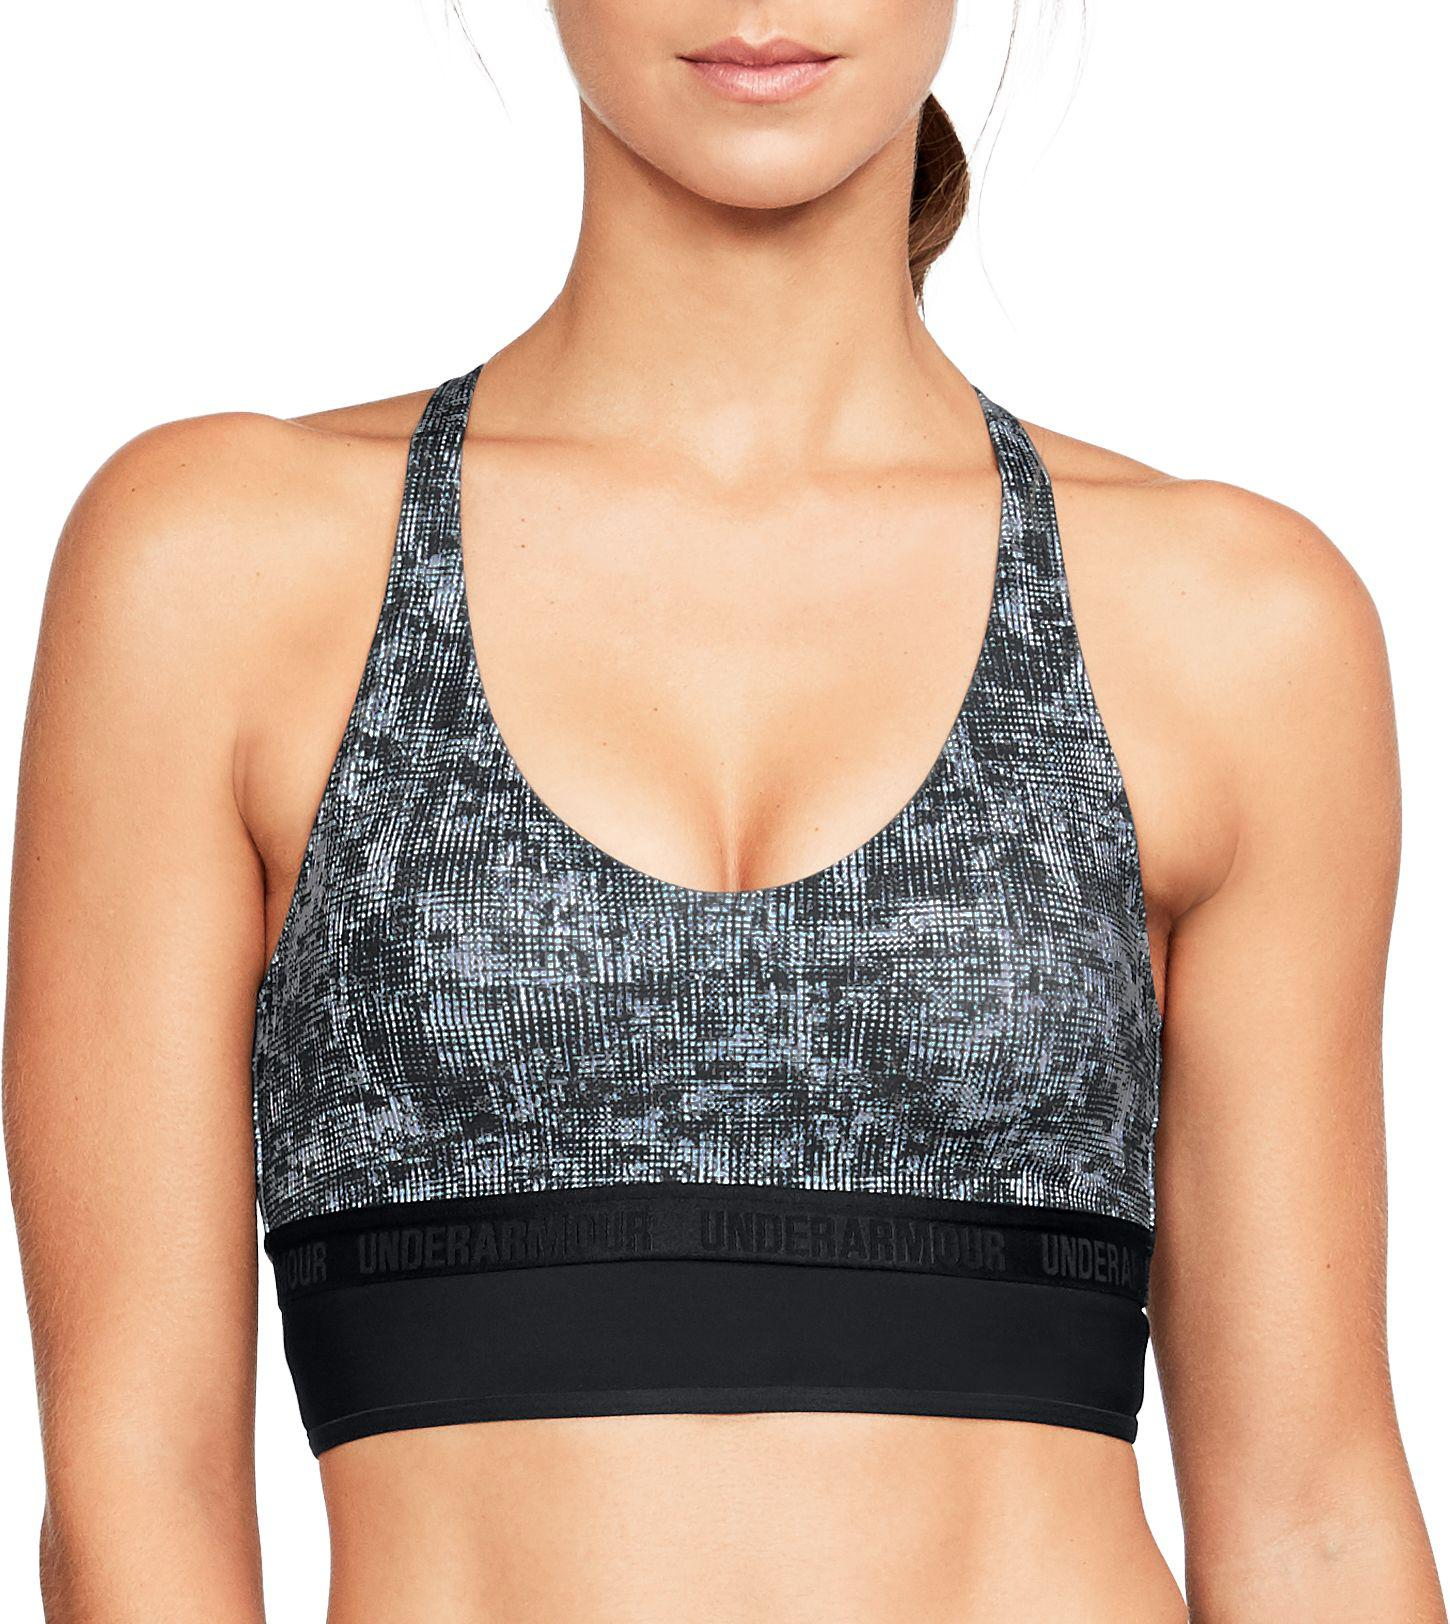 039daf72e51ff Lyst - Under Armour Printed Mesh Triangle Back Low-impact Sports ...